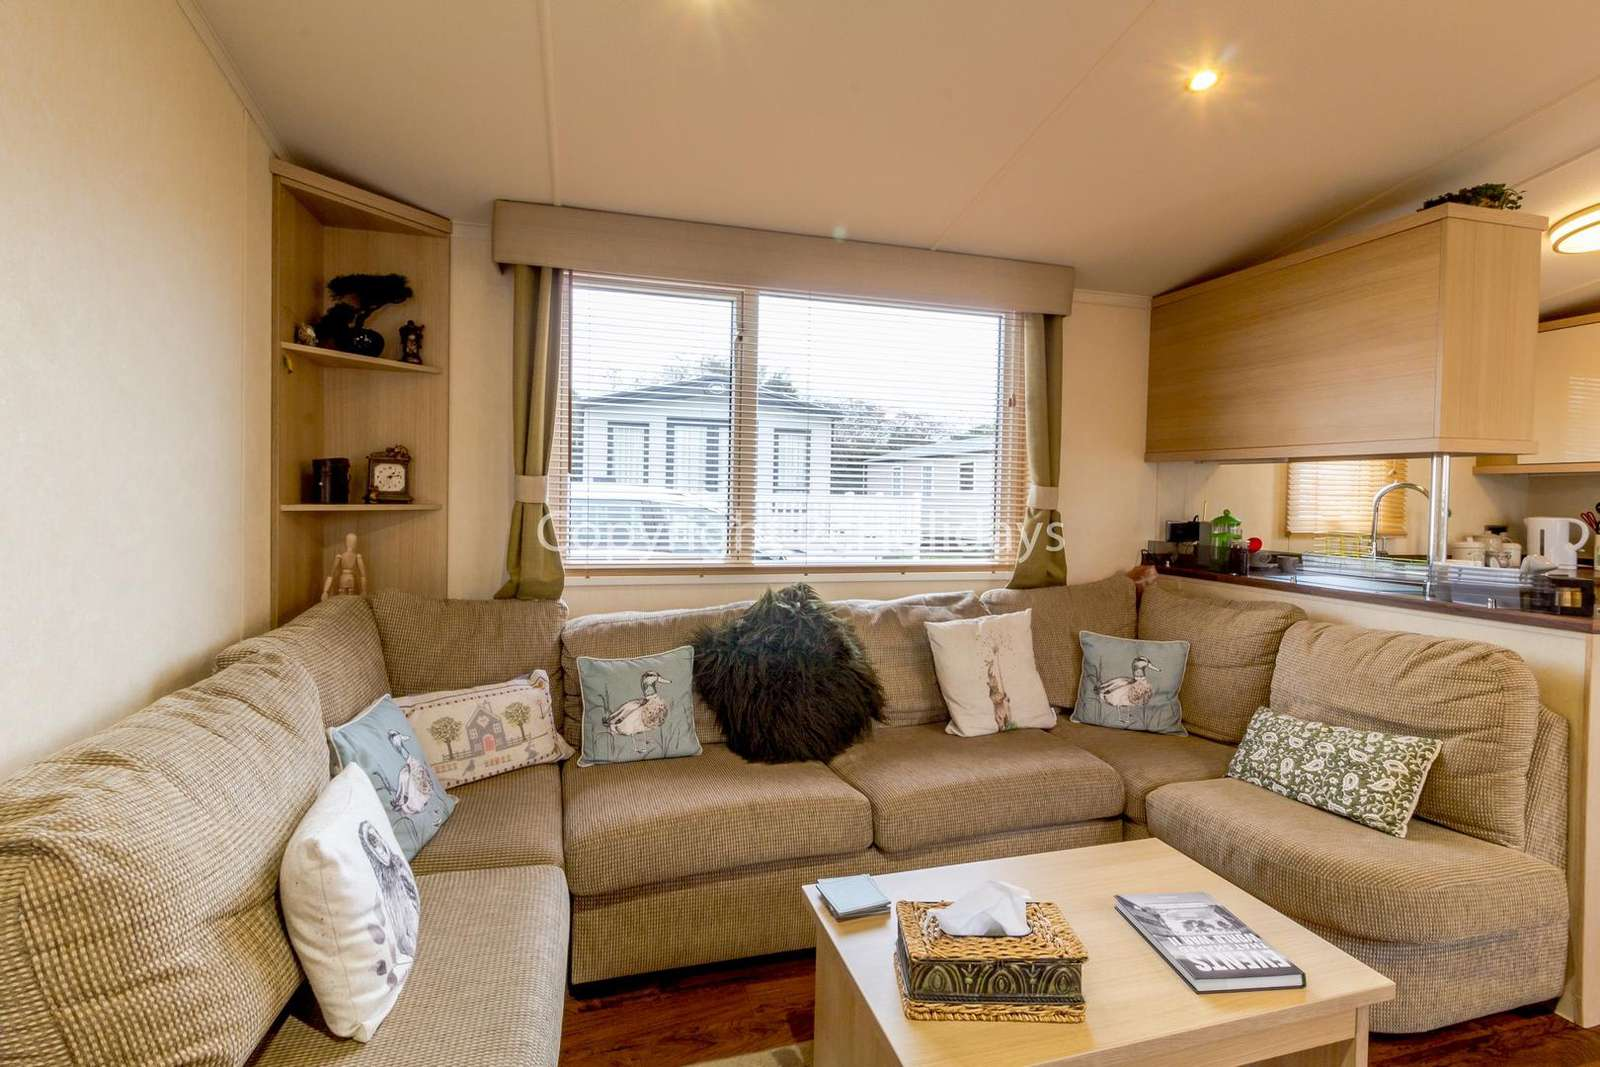 Includes a great double sofa bed!